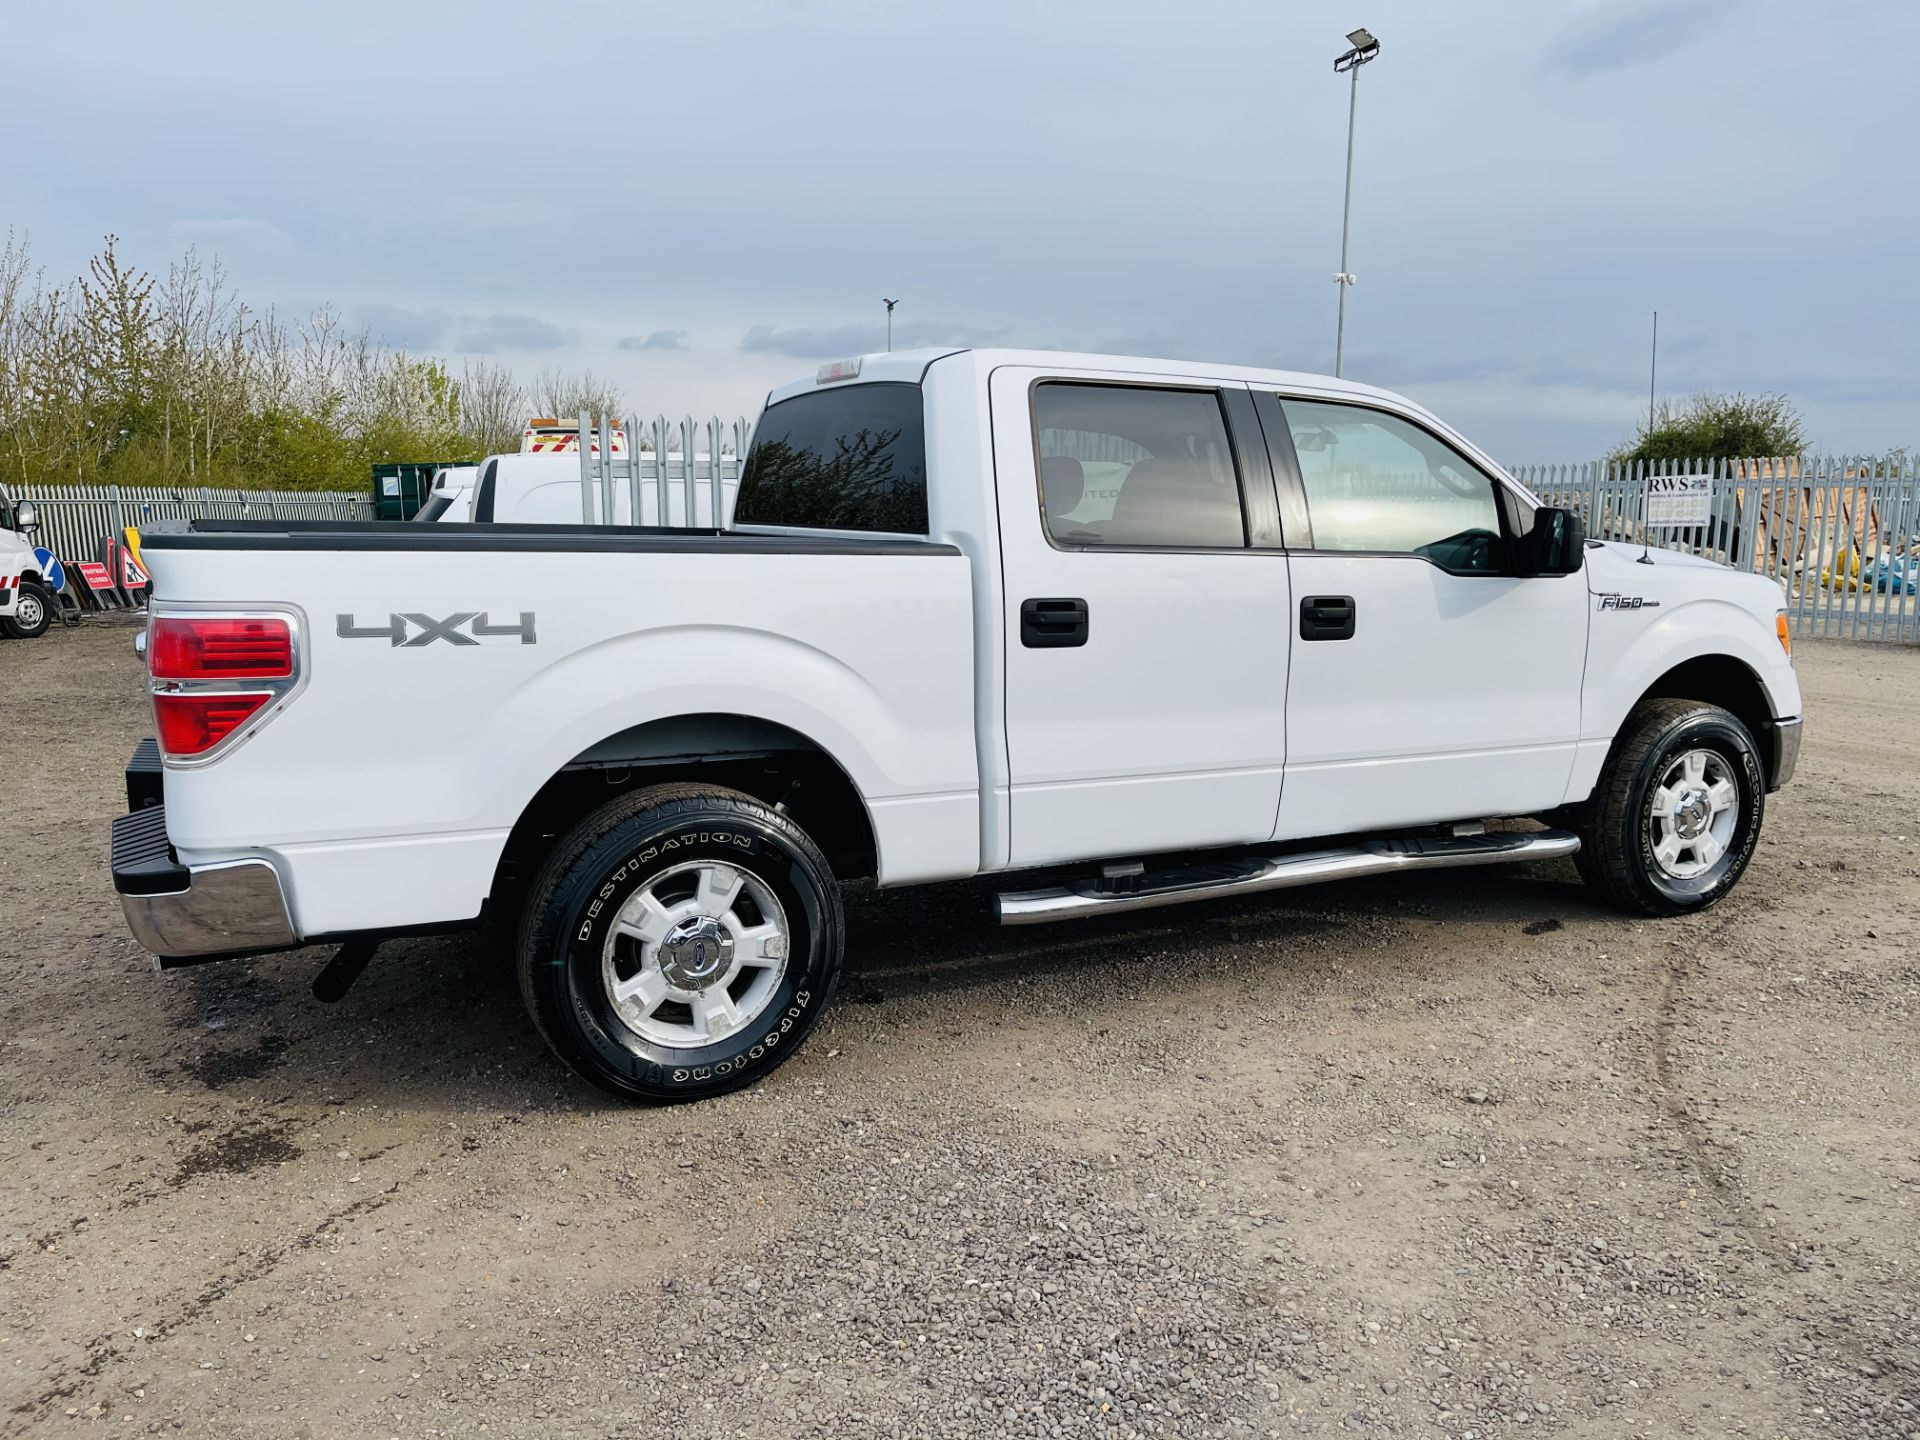 Ford F-150 XLT 4.6L V8 Super-crew 4WD 2010 ' 2010 Year' 6 Seats - Air con - NO RESERVE - Image 16 of 24